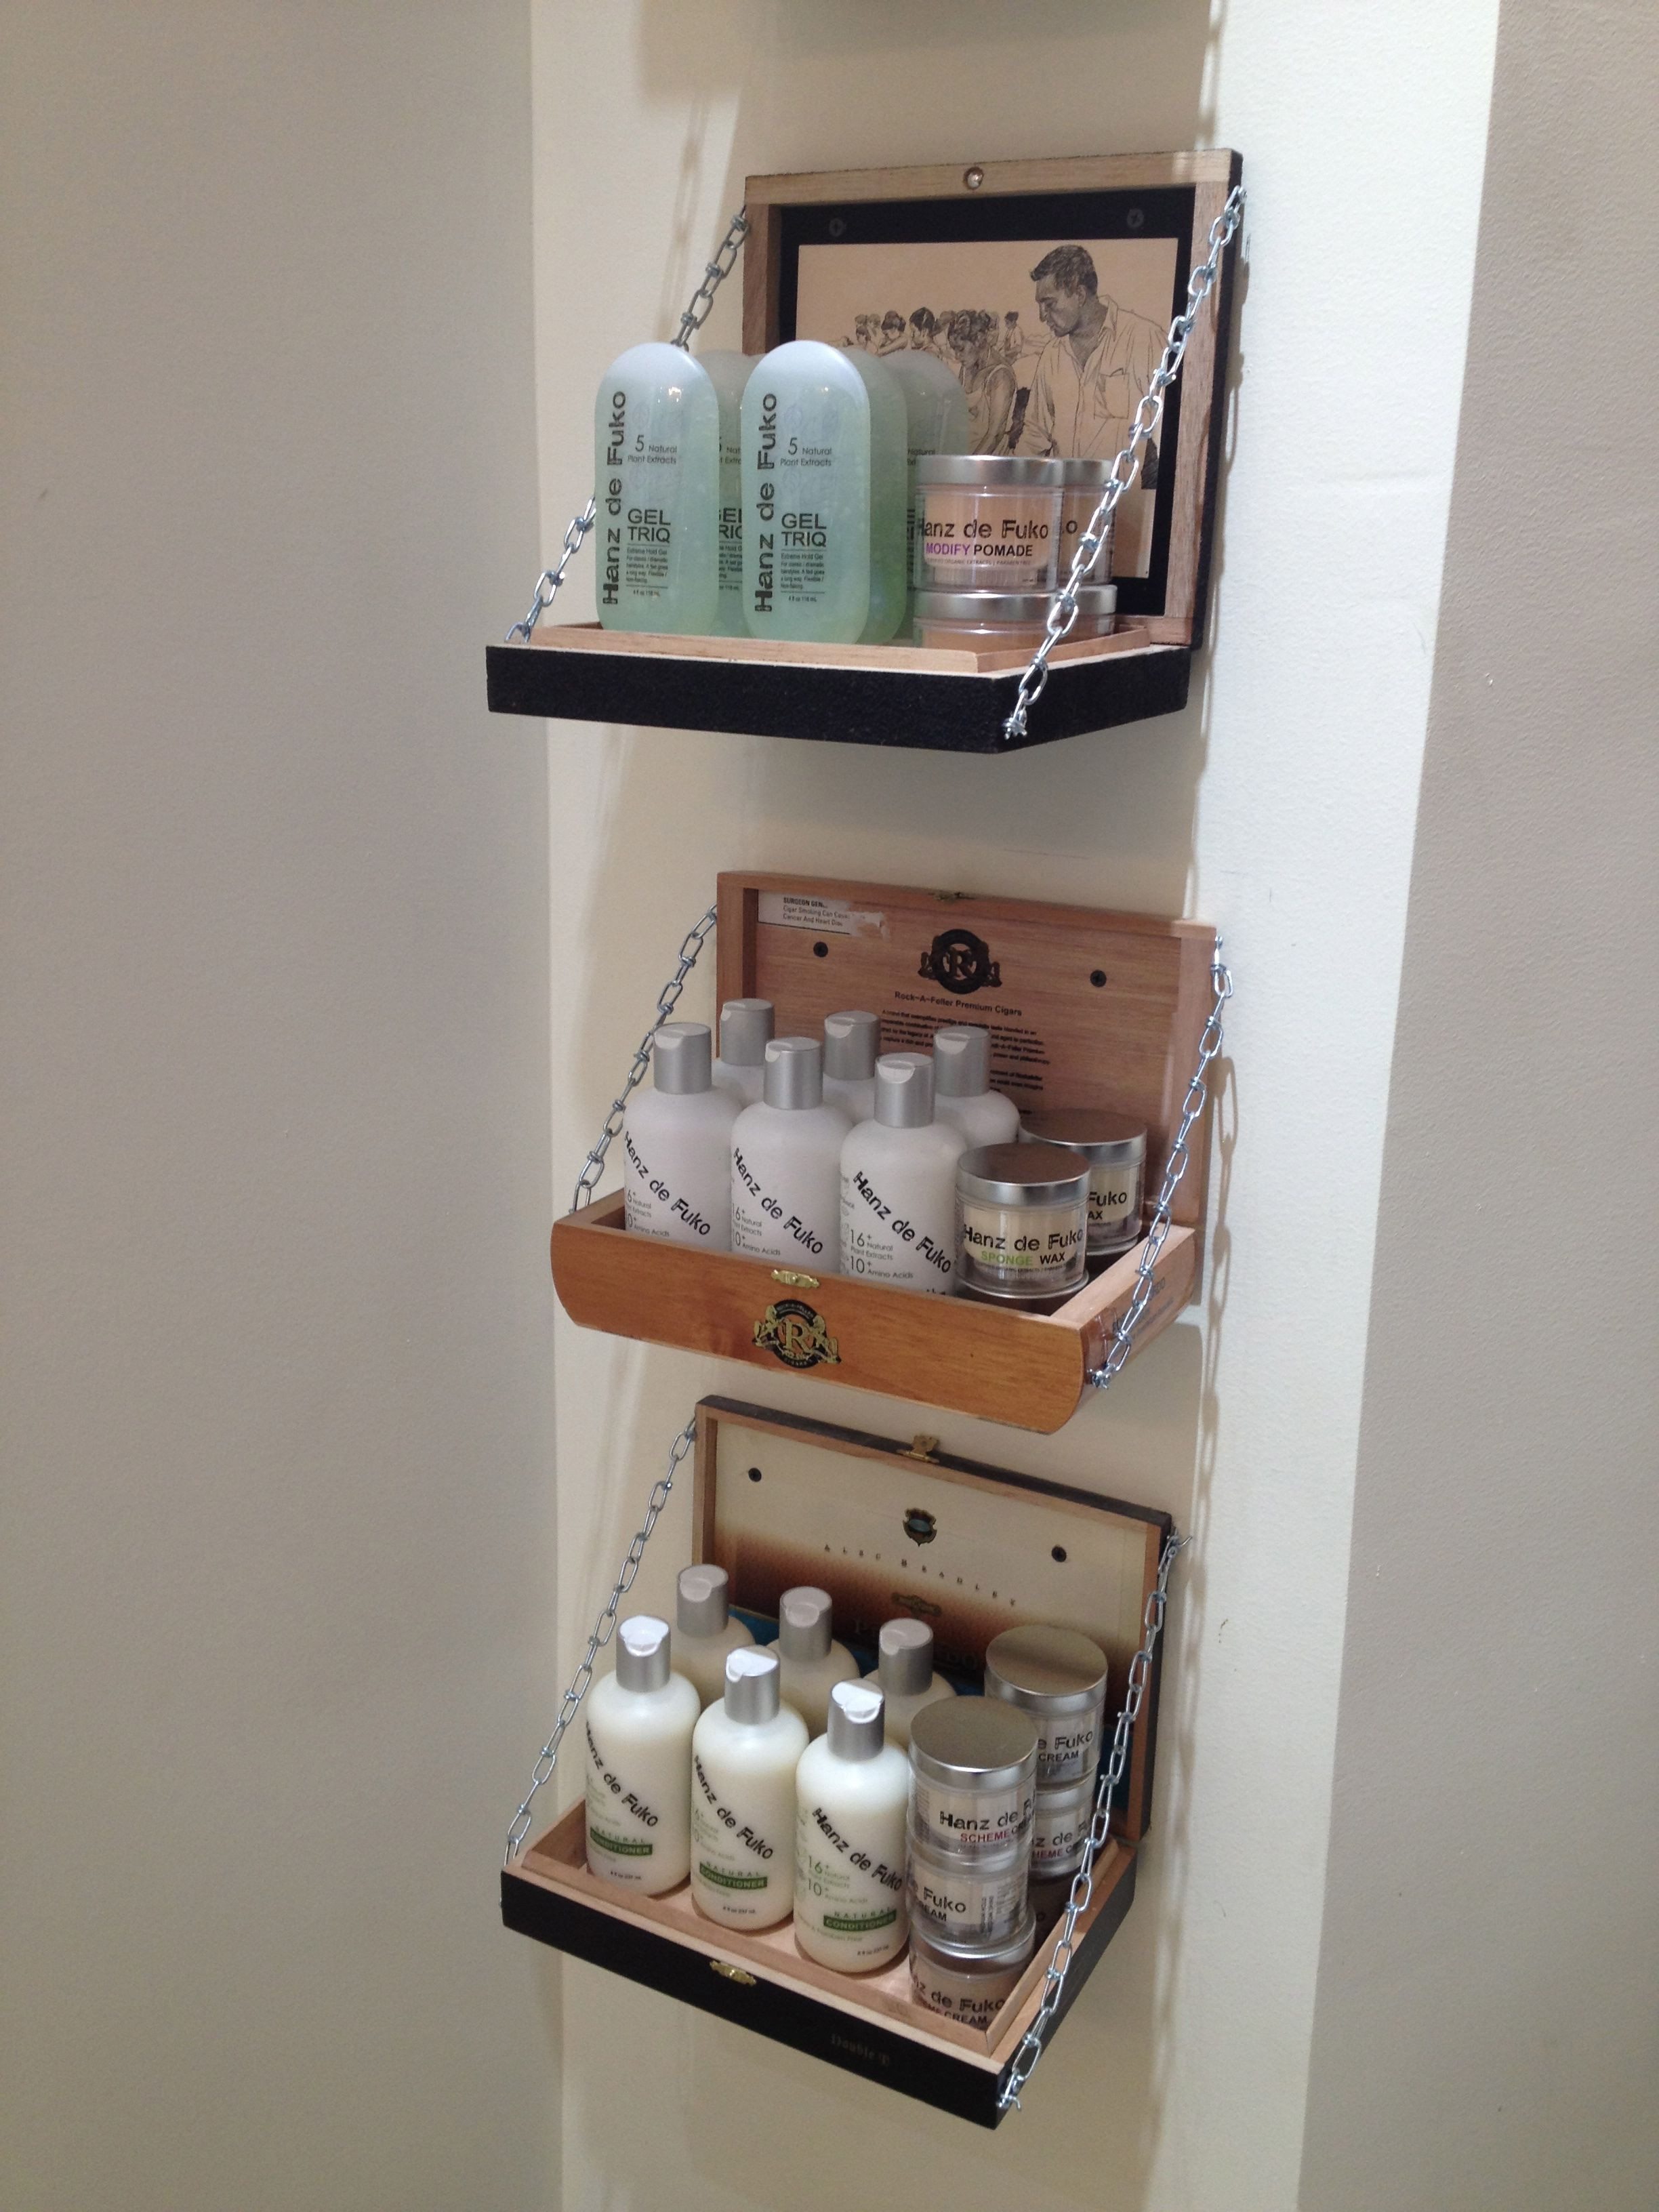 Best ideas about Cigar Box Craft Ideas . Save or Pin Salon Eco Chic we use old cigar boxes for our hairstyling Now.